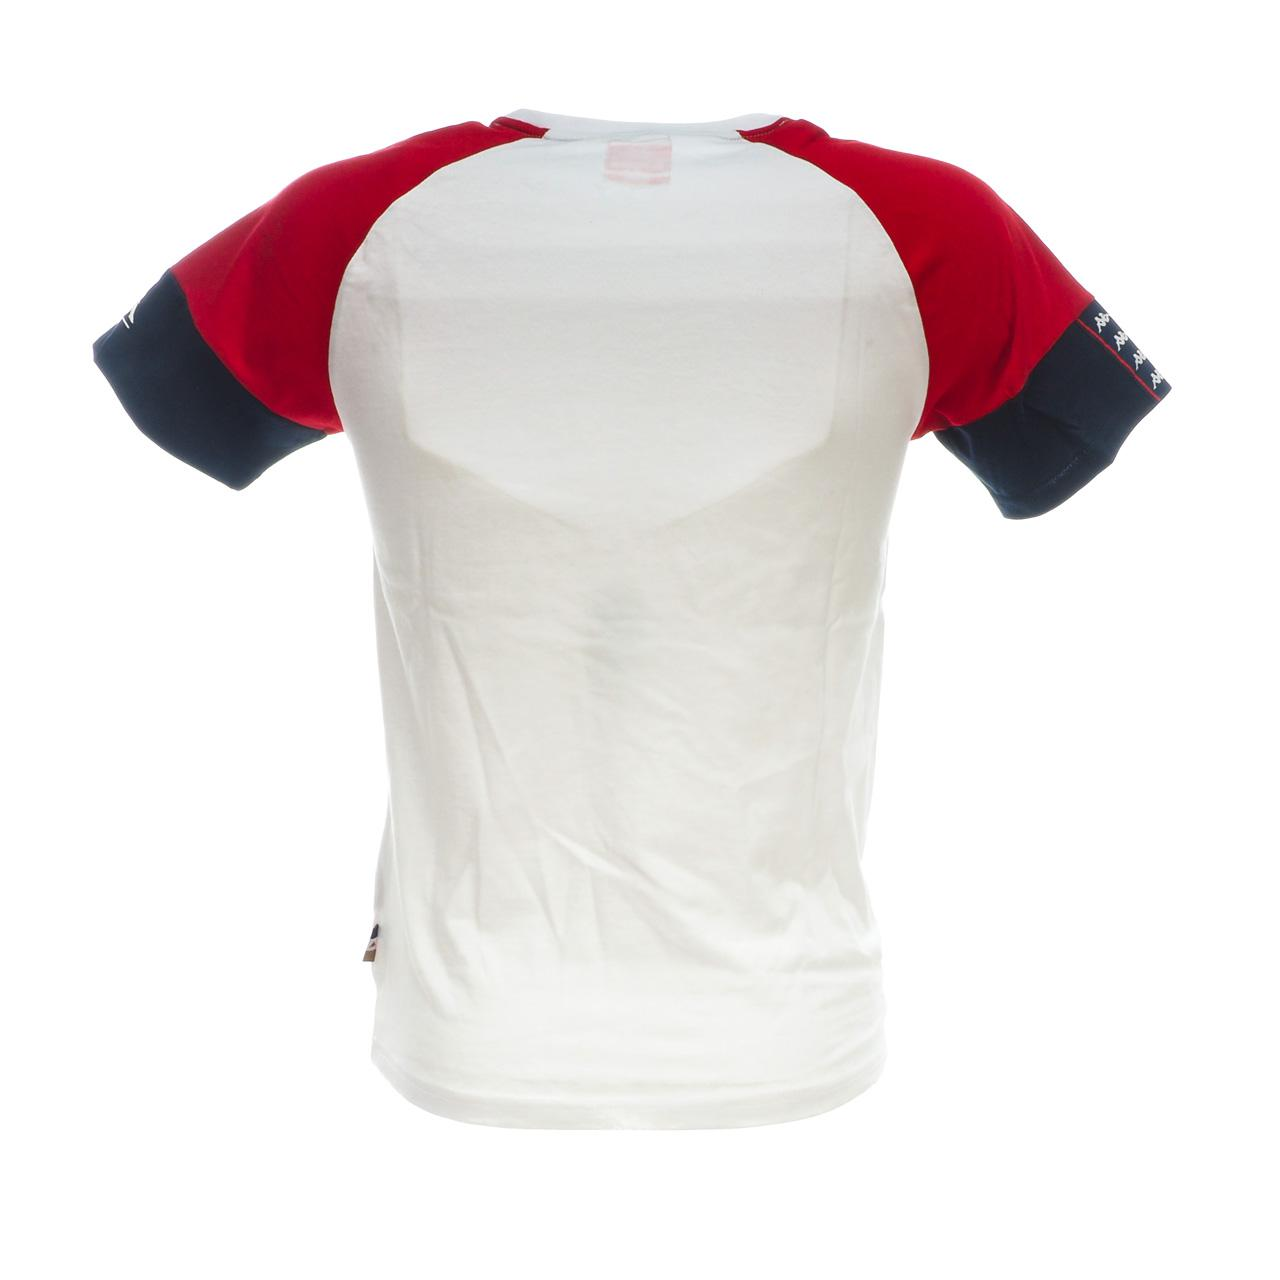 Short-Sleeve-T-Shirt-Kappa-Irmiou-Red-White-Navy-White-46521-New thumbnail 5